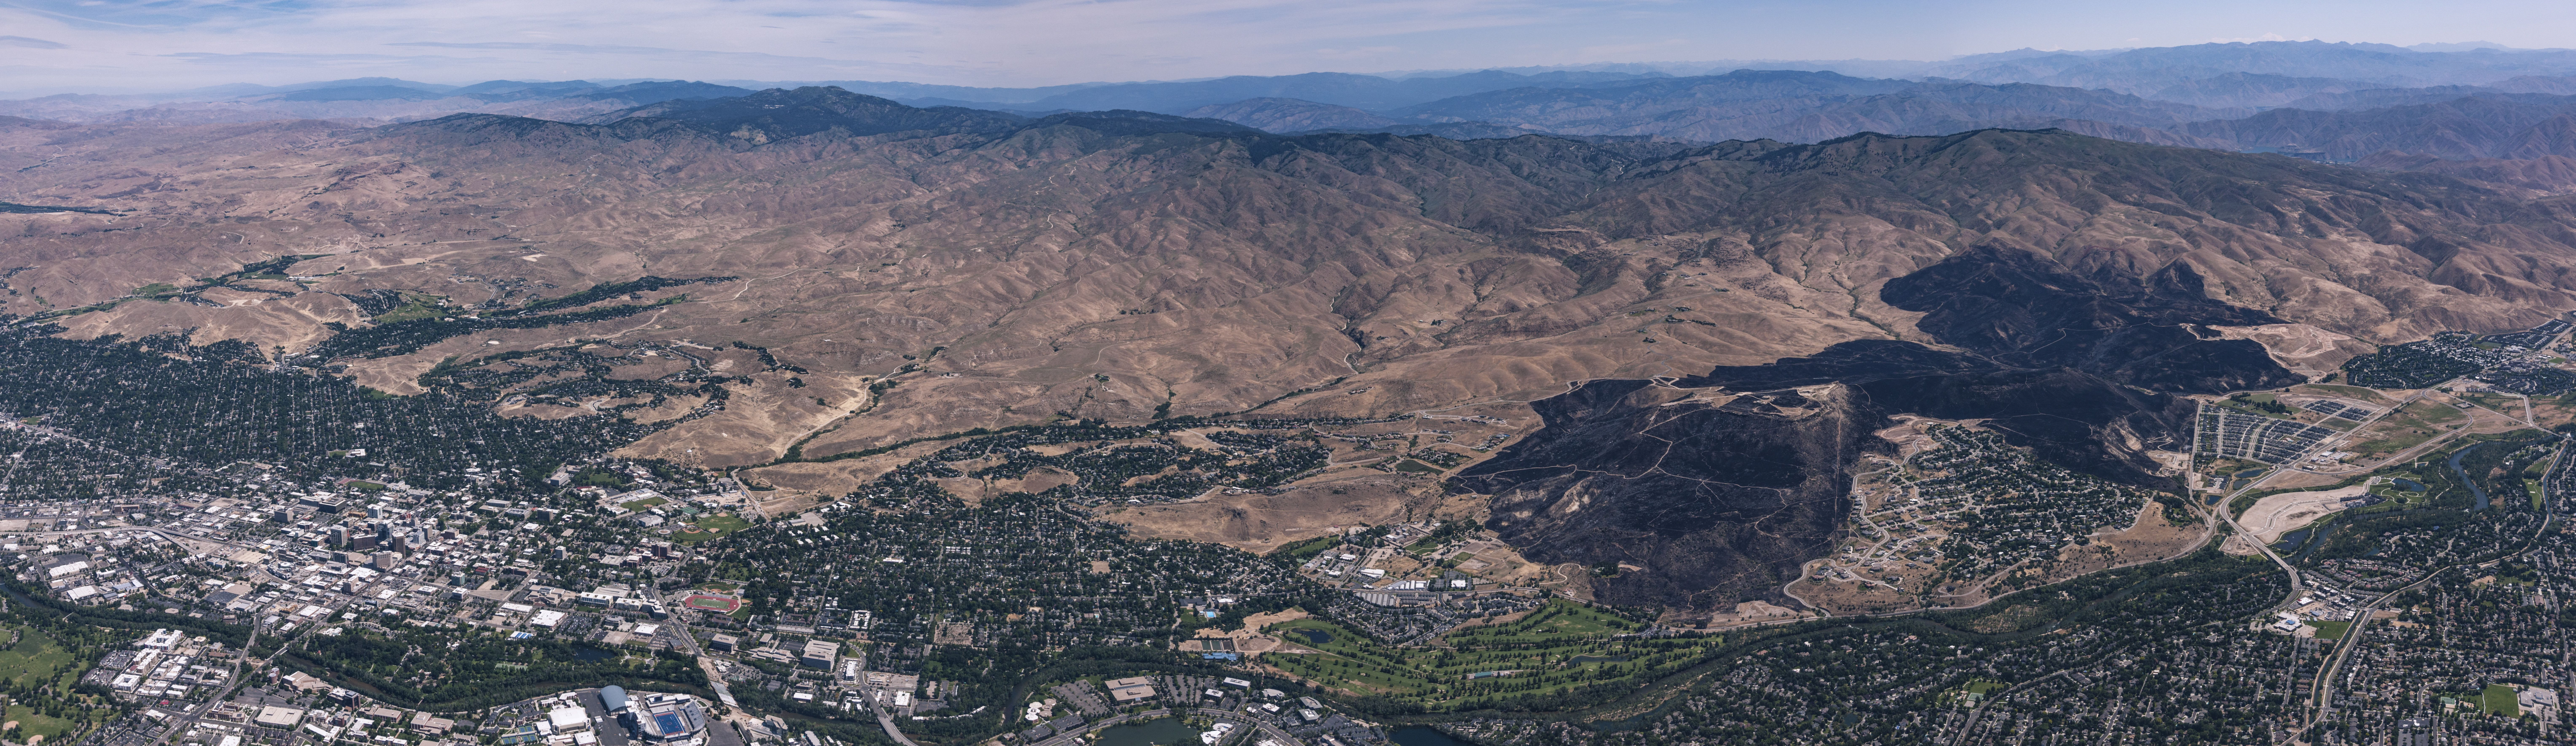 Panorama of Table Rock foothills fire. Photo by Leo A. Geis, Idaho Airships, Inc.